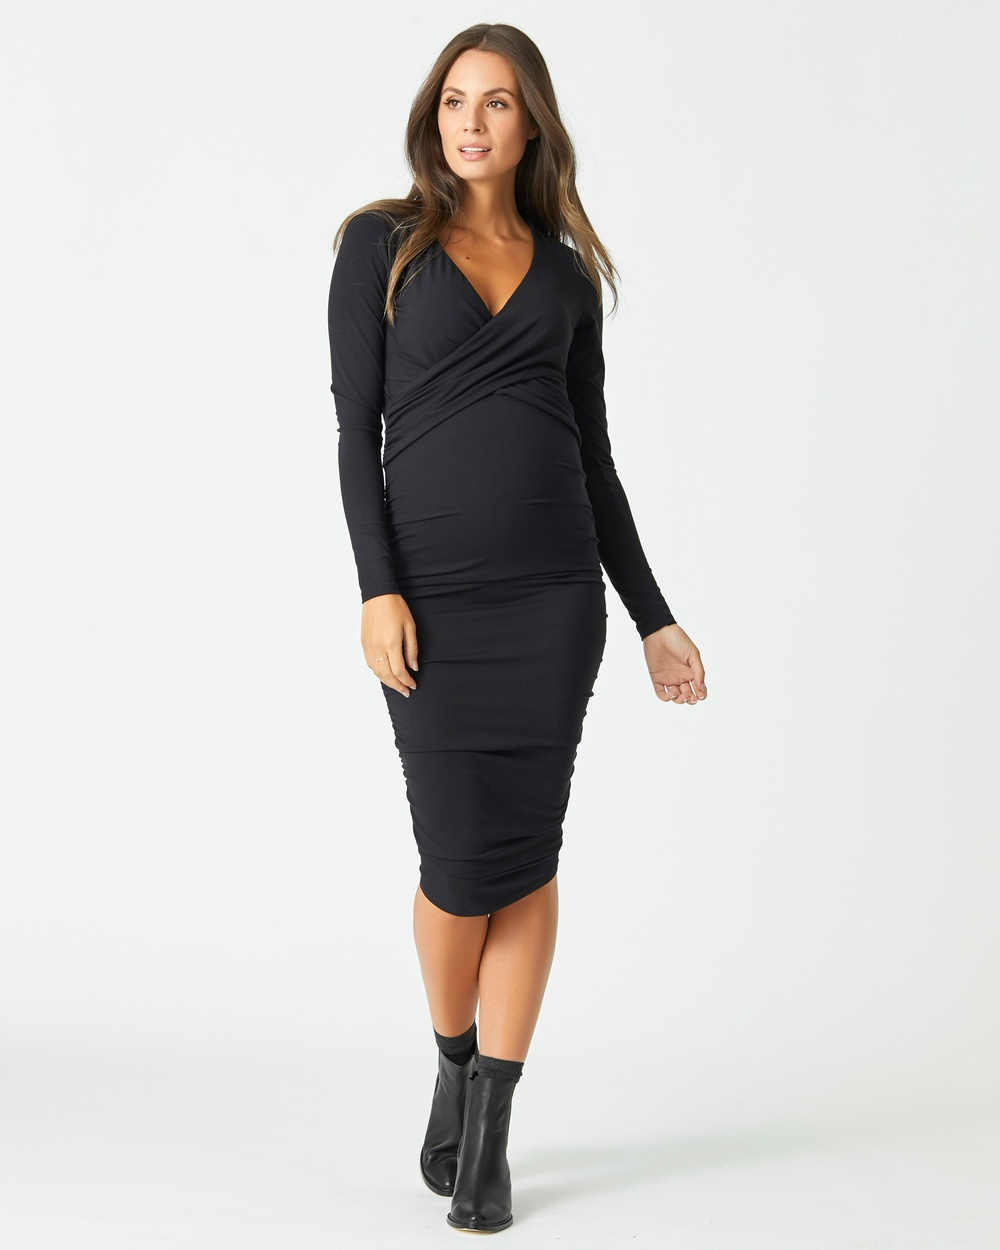 Photo of Pea in a Pod Maternity Black Bailey Crossover Nursing Dress - buy Pea in a Pod Maternity dresses on sale online